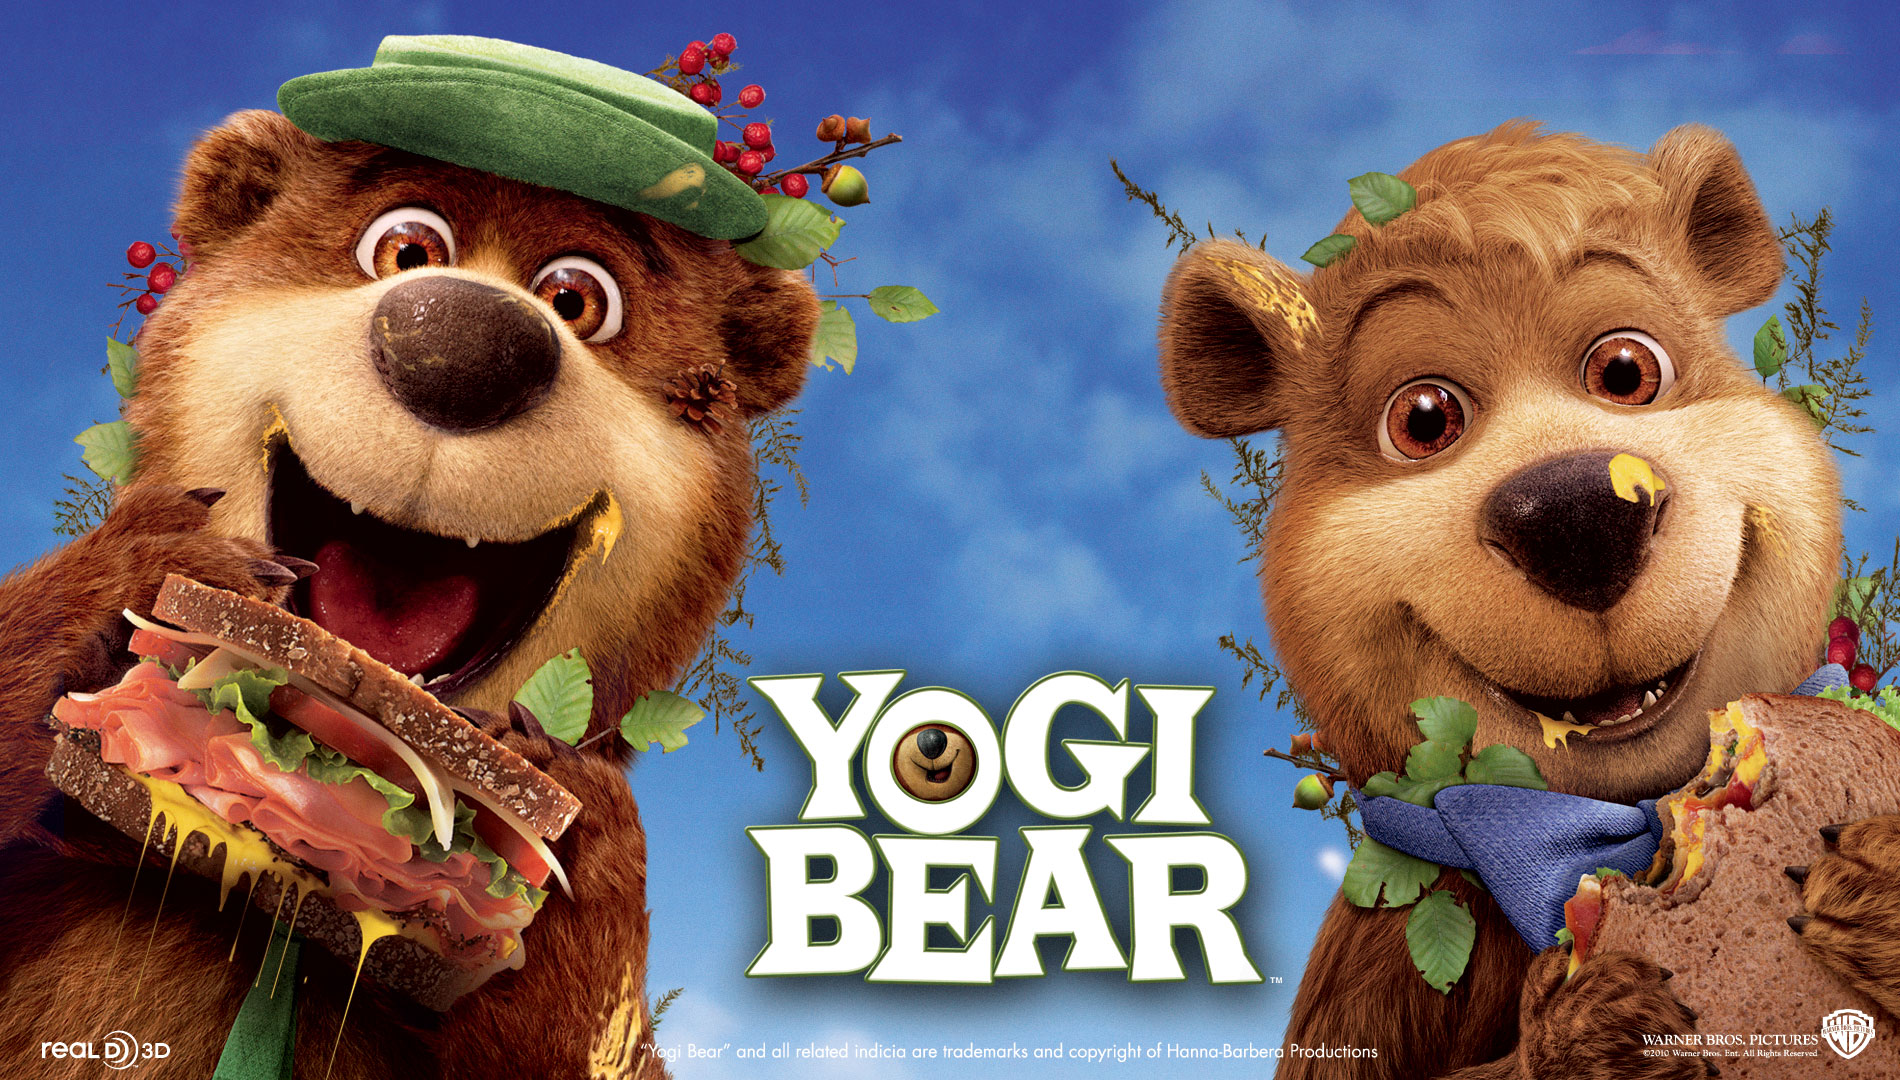 Yogi bear movie